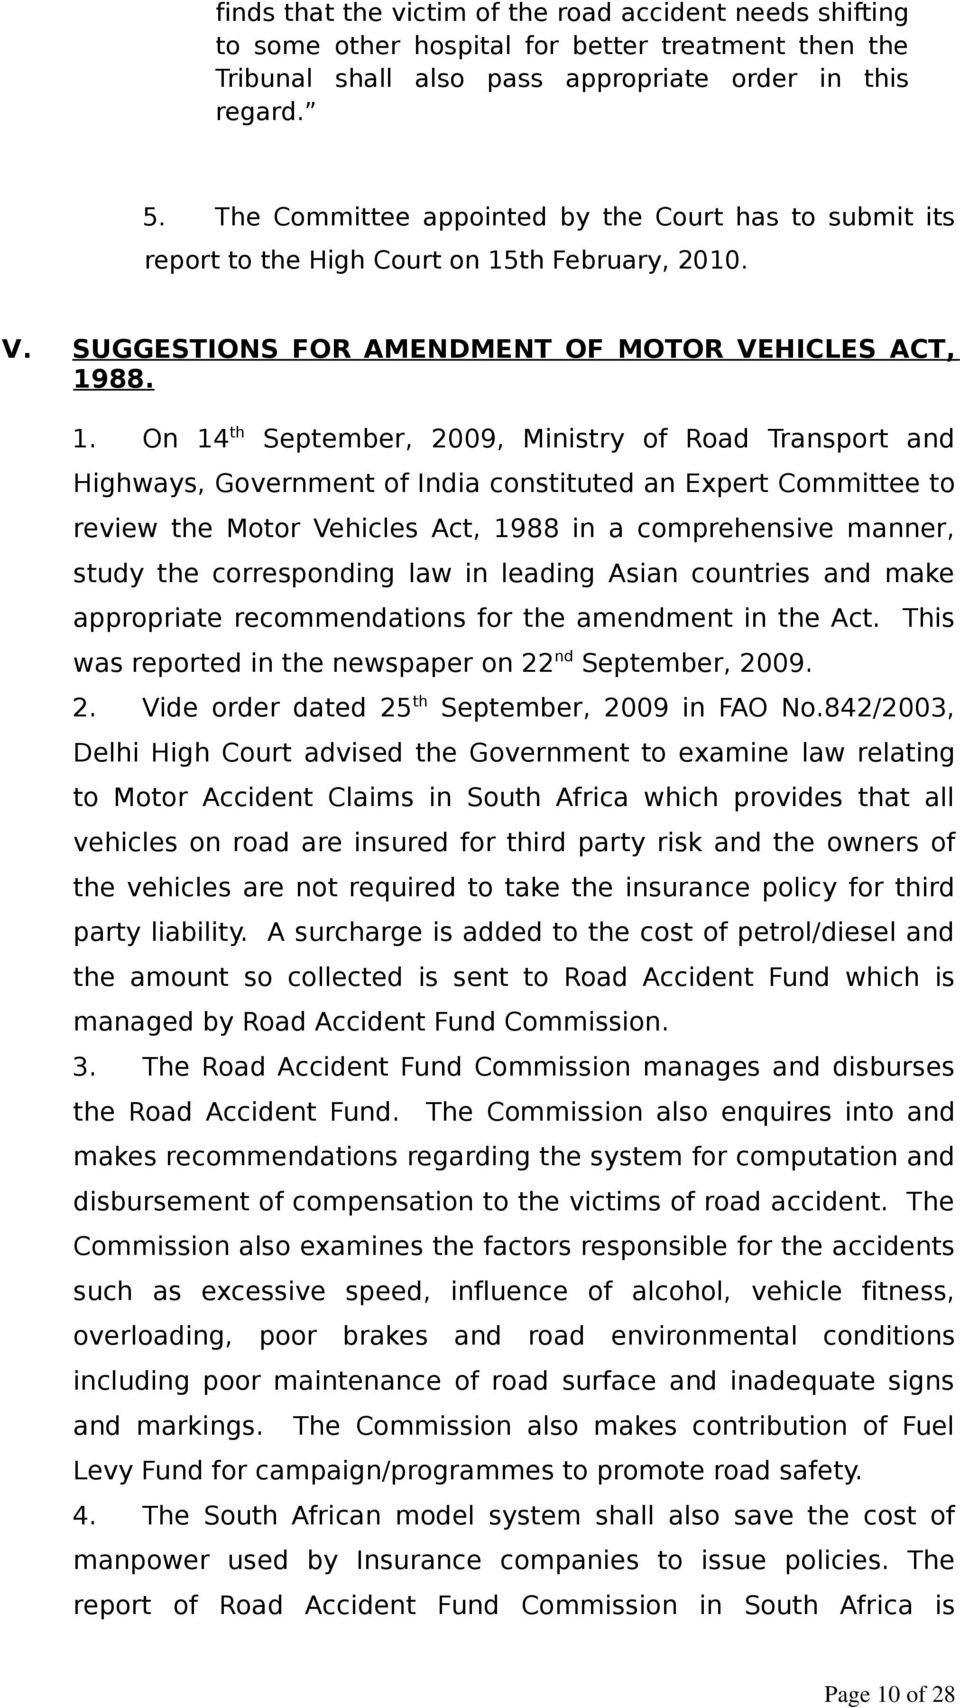 th February, 2010. V. SUGGESTIONS FOR AMENDMENT OF MOTOR VEHICLES ACT, 19